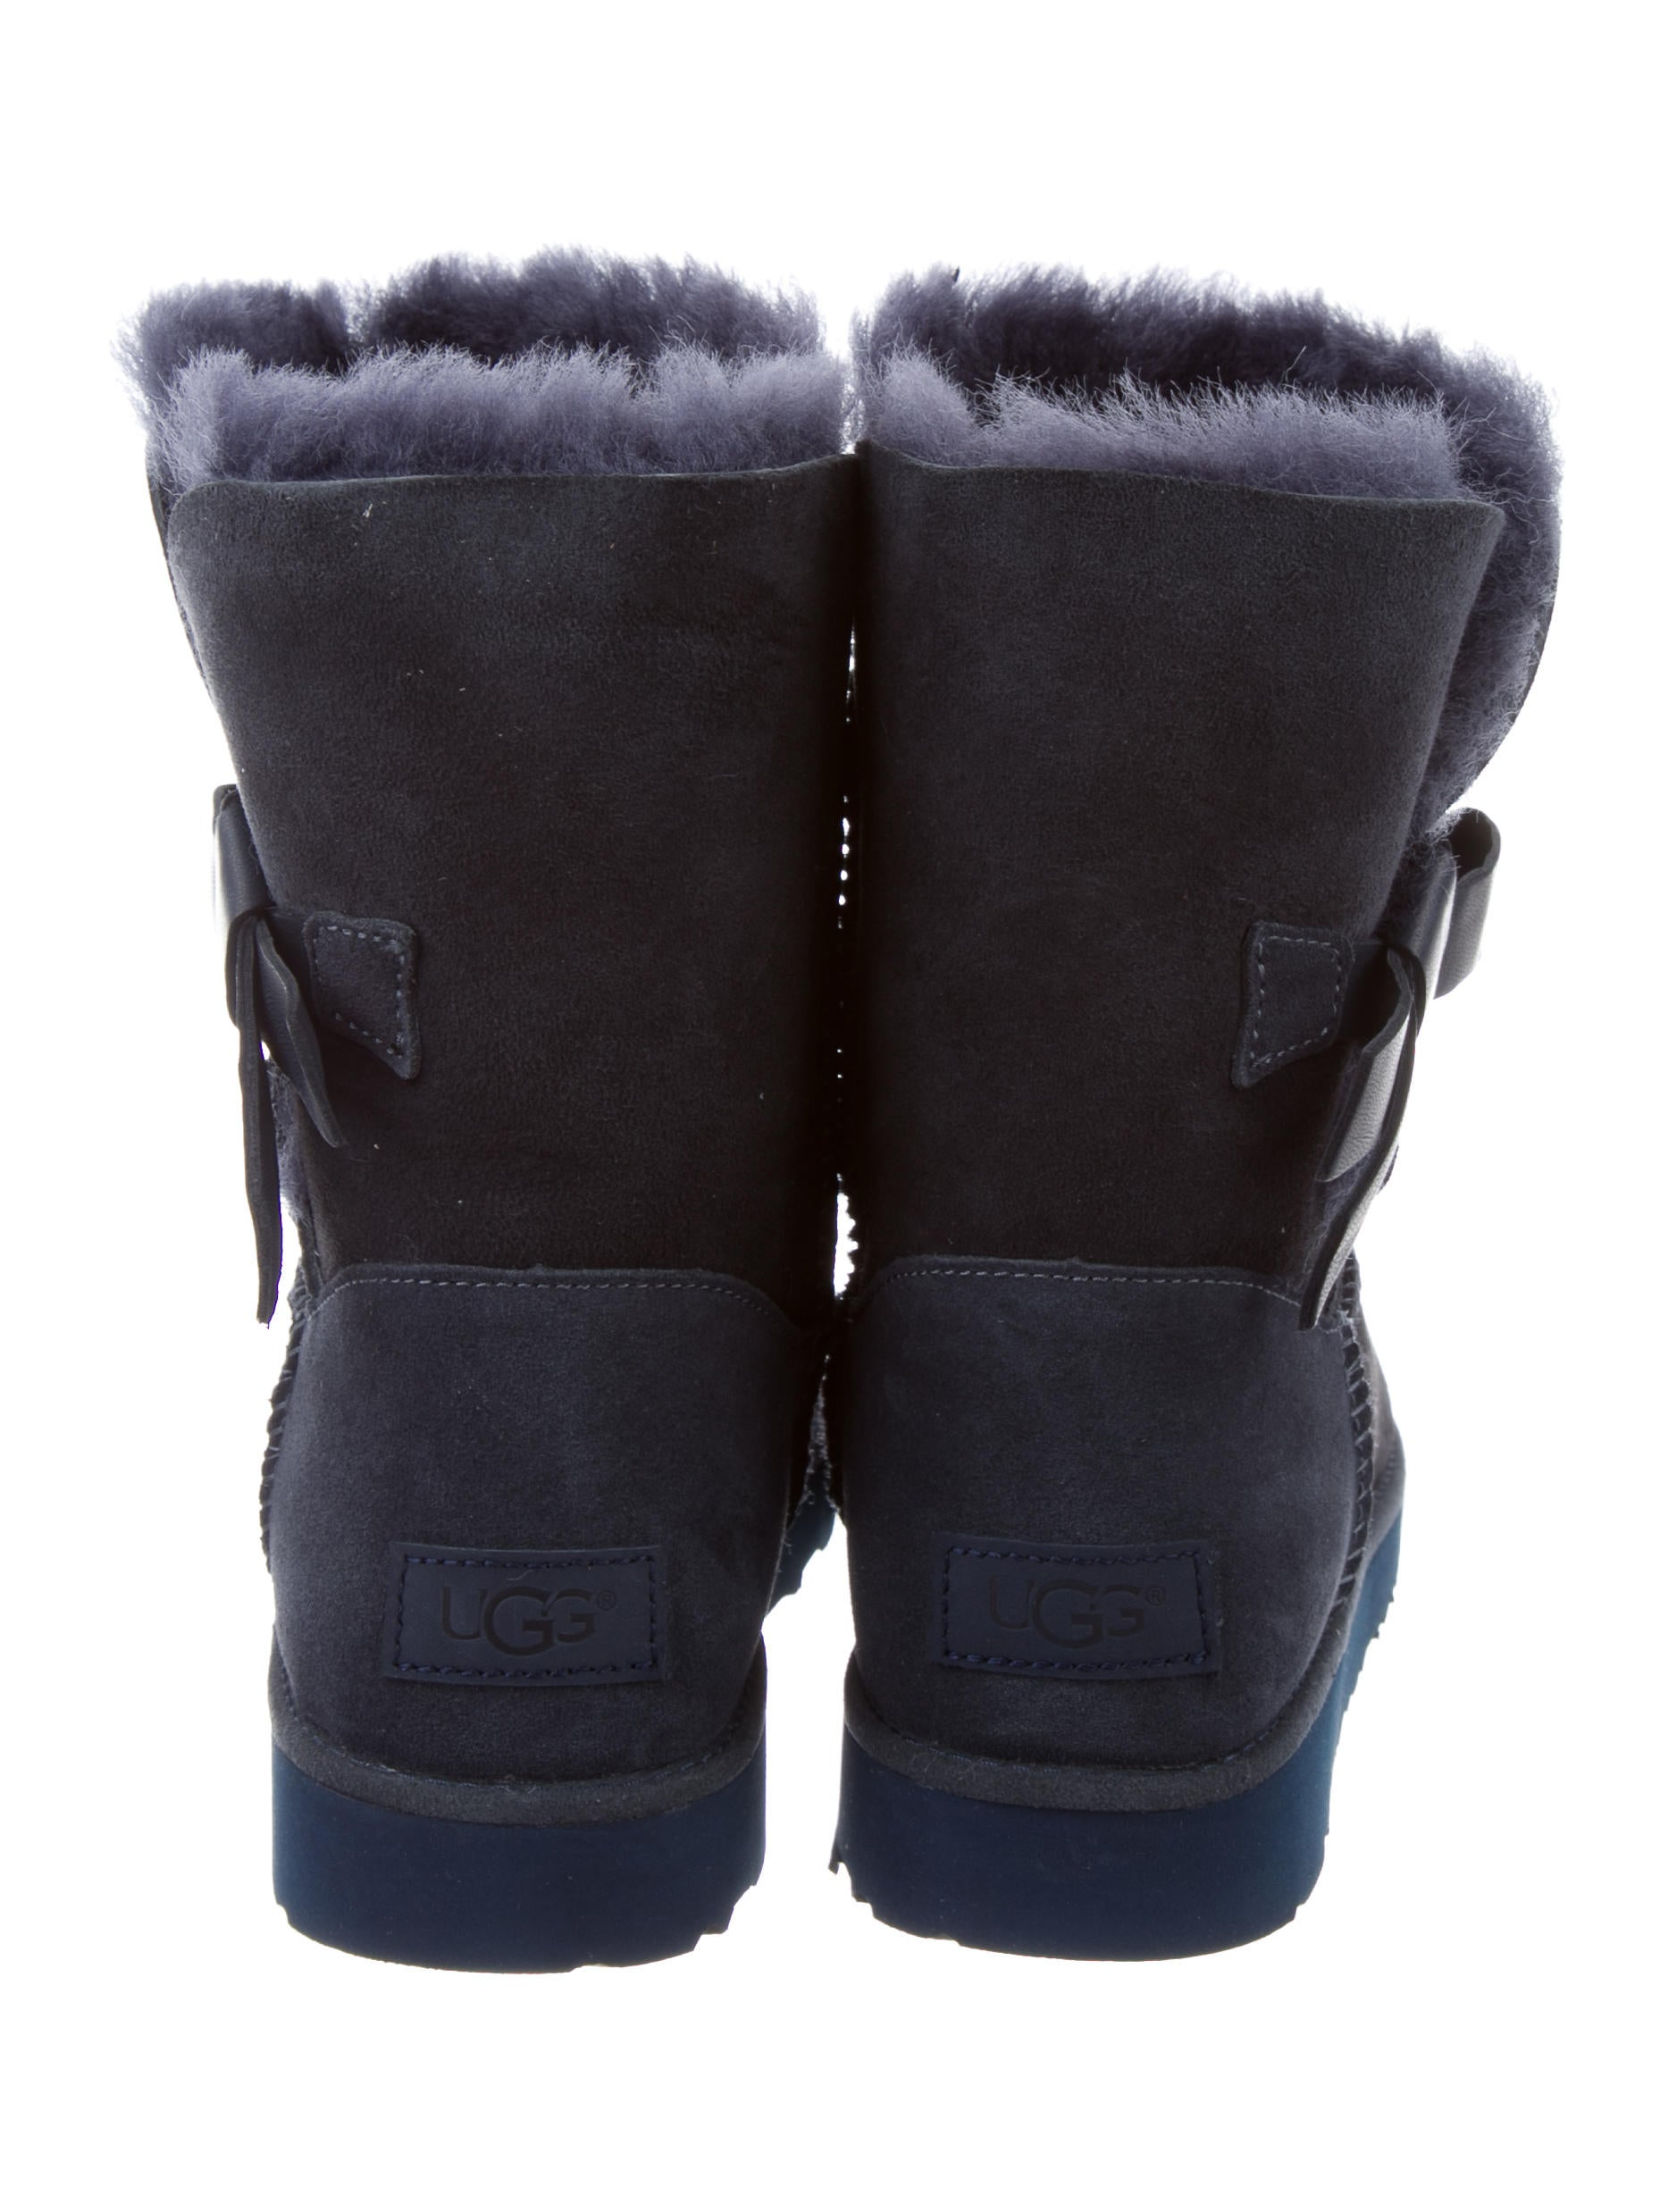 Ugg Australia Classic Knot Short Boots W Tags Shoes